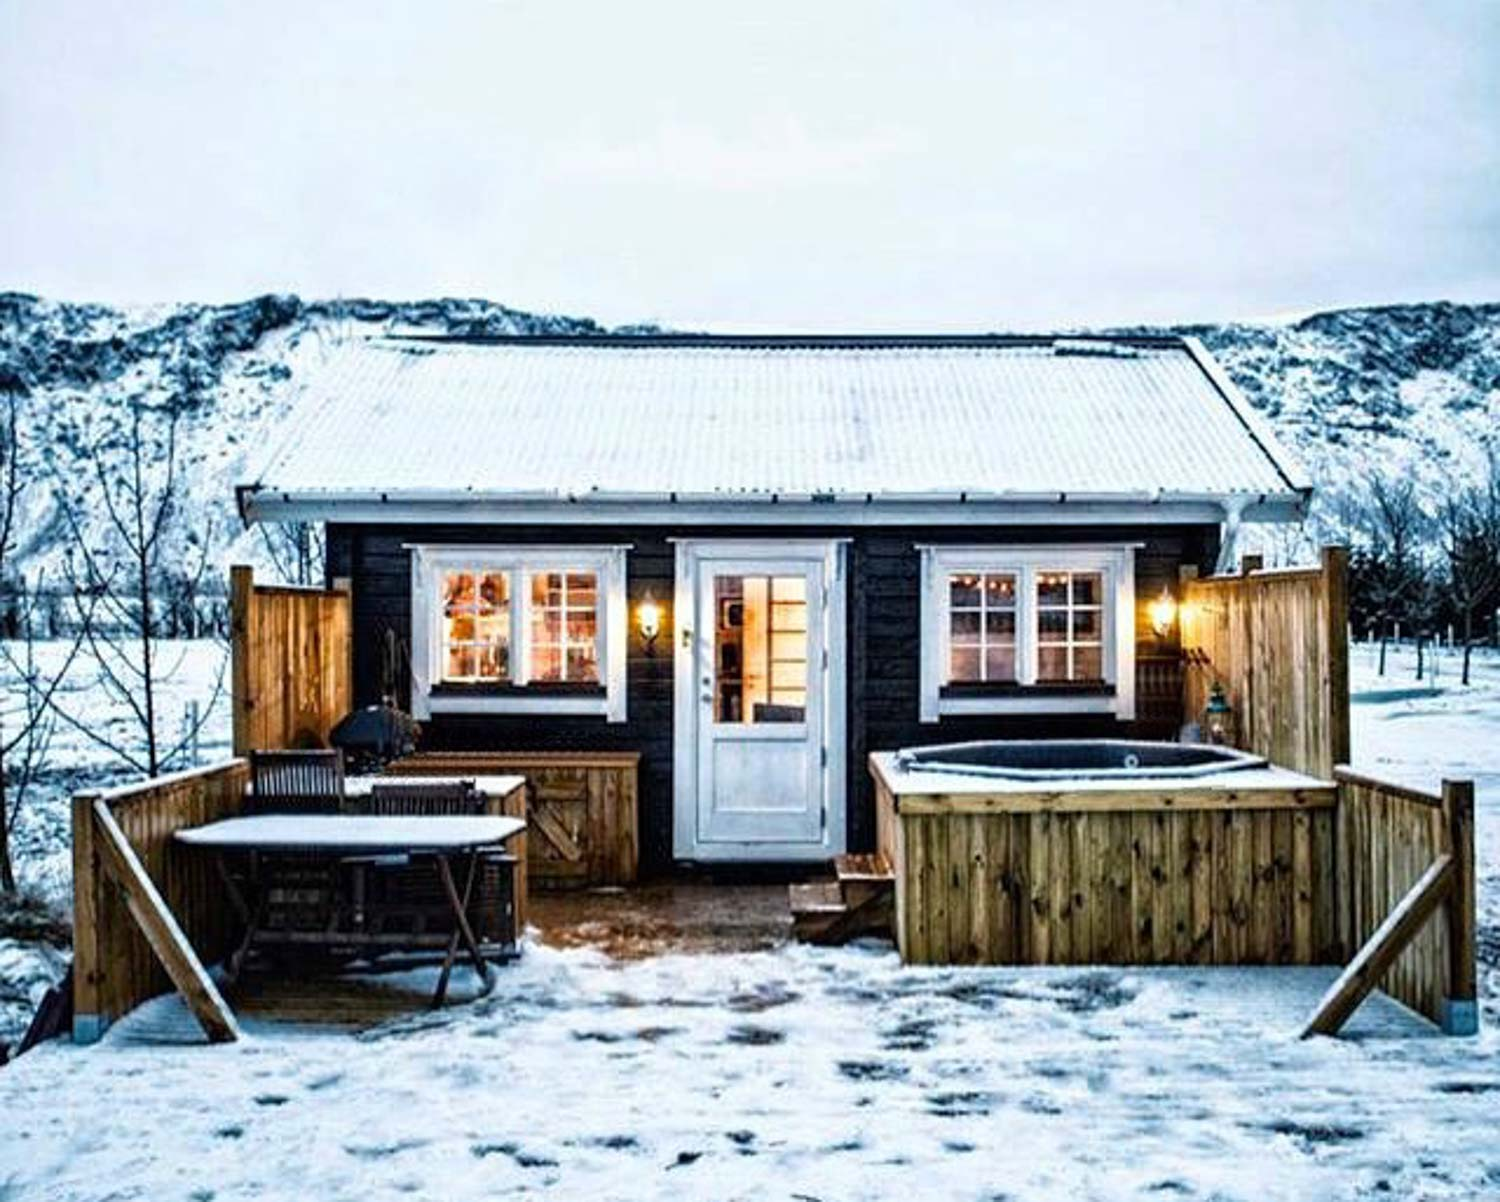 5-day Iceland itinerary - AirBnB cabin in Olfus